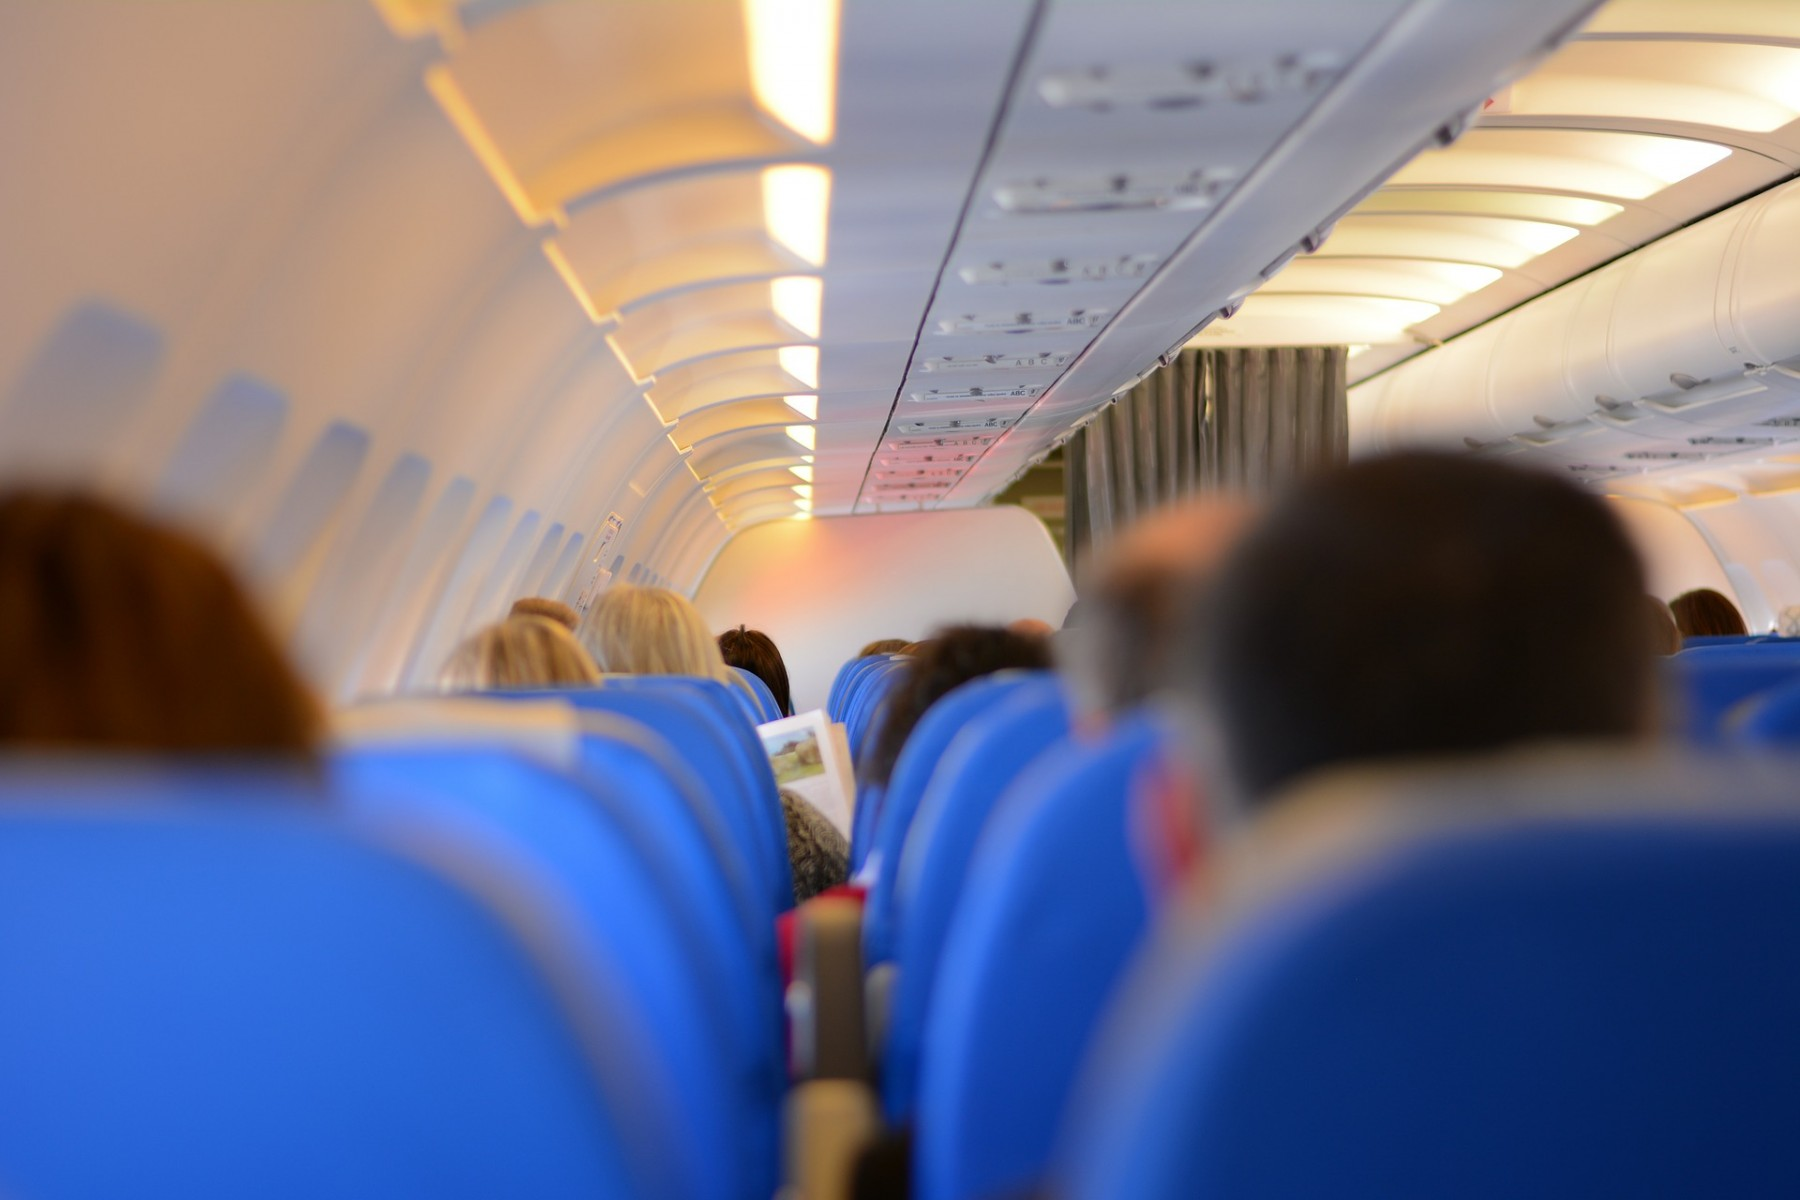 How to Avoid Germs on an Airplane